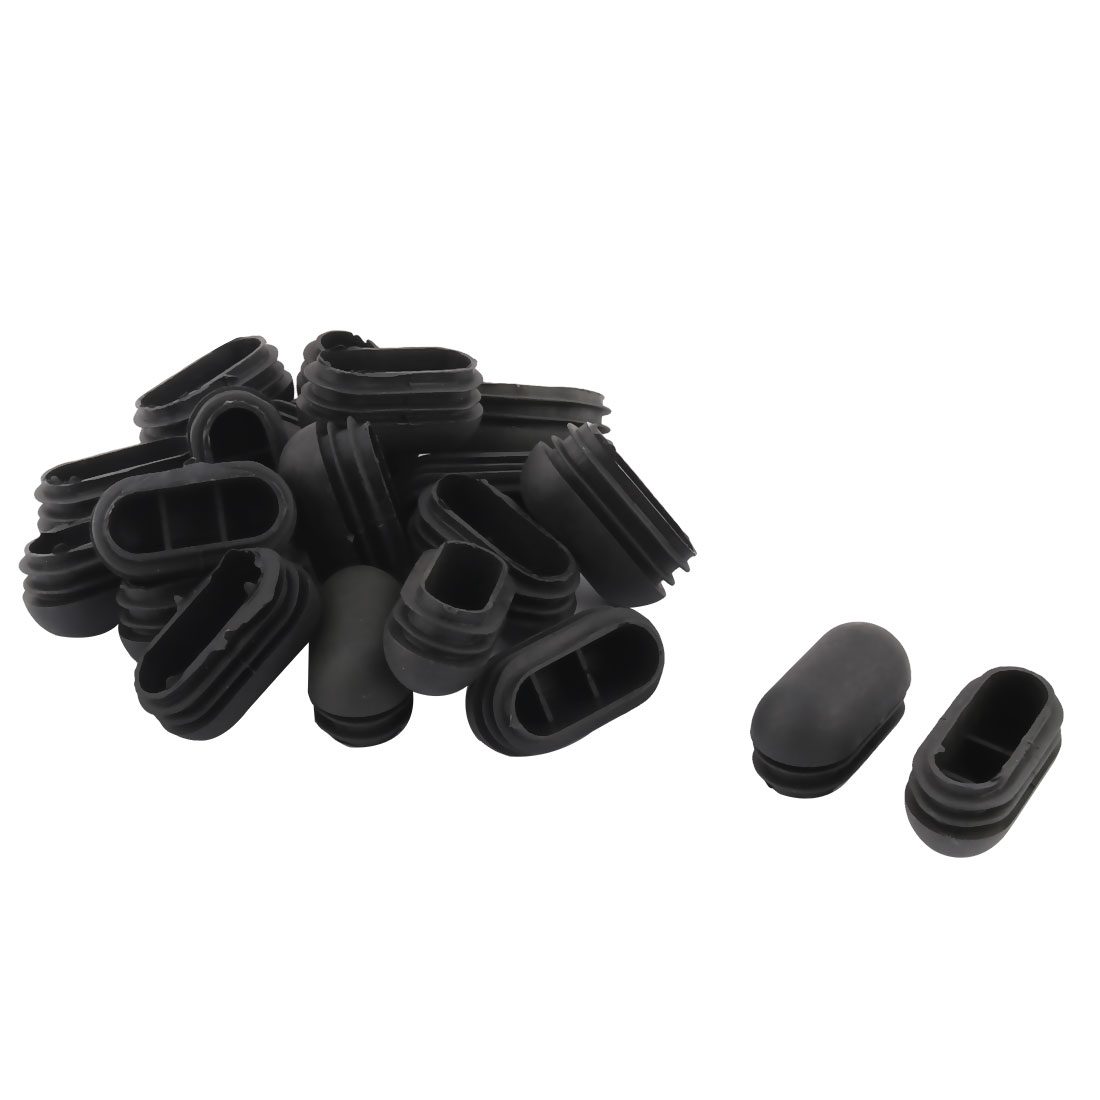 Plastic Oval Design Tube Insert End Blanking Cover Cap Black 50 x 25mm 20pcs